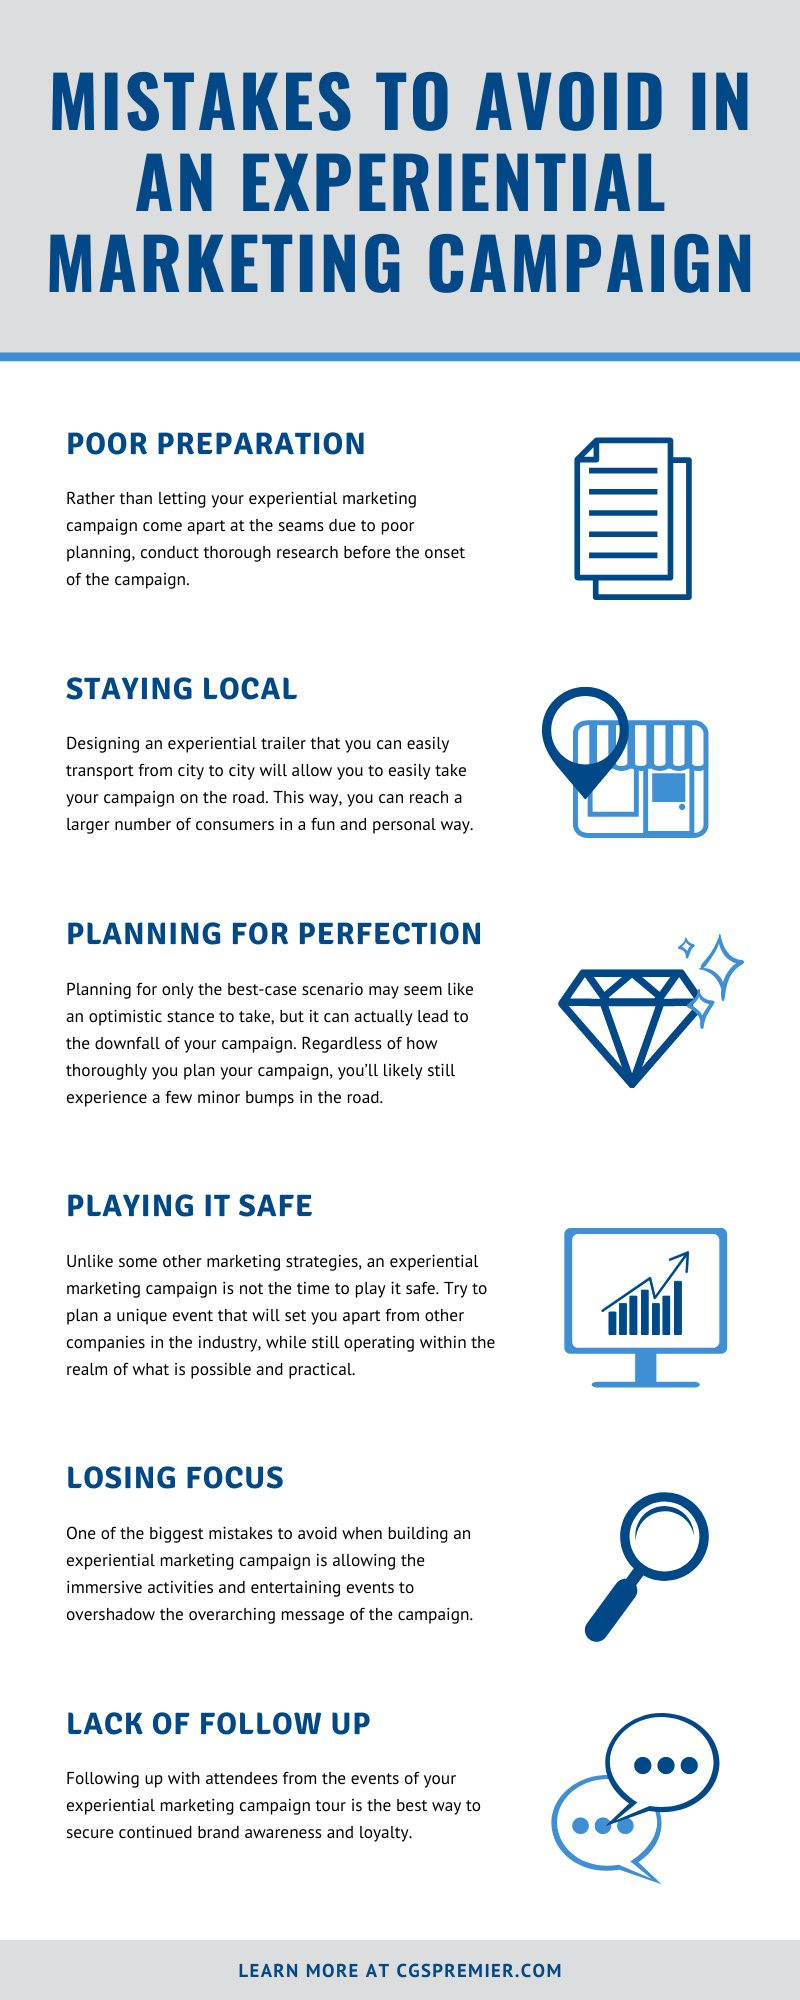 Mistakes to Avoid in an Experiential Marketing Campaign infographic